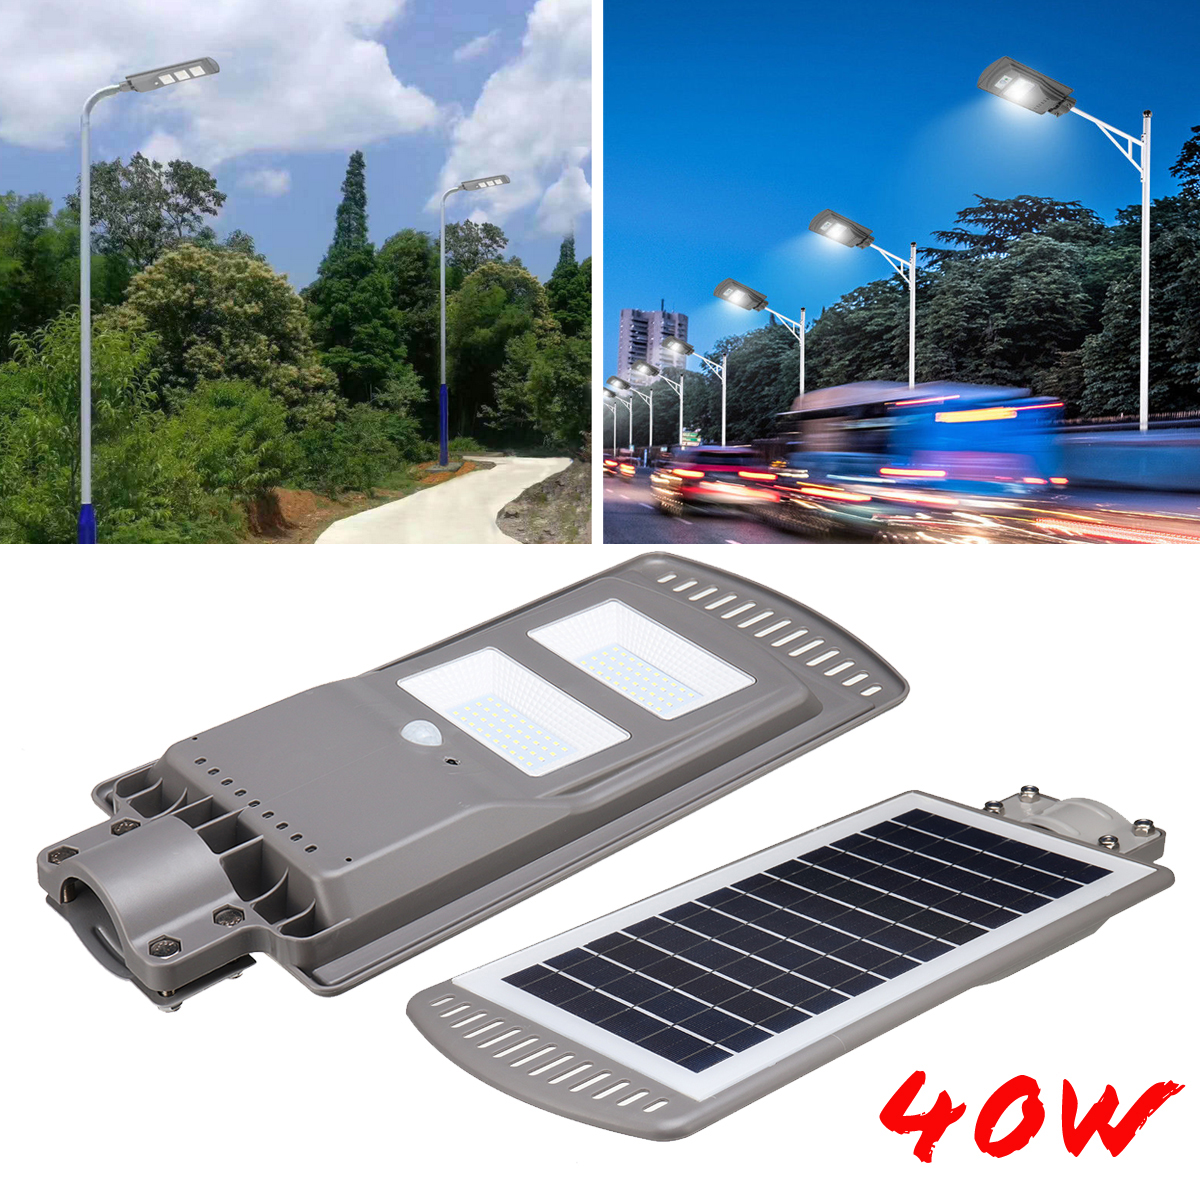 цена на Solar Powered Panel 40W LED Solar Street Light All-in-1 Time Switch Waterproof IP67 Wall Path Lighting Lamp for Outdoor Garden